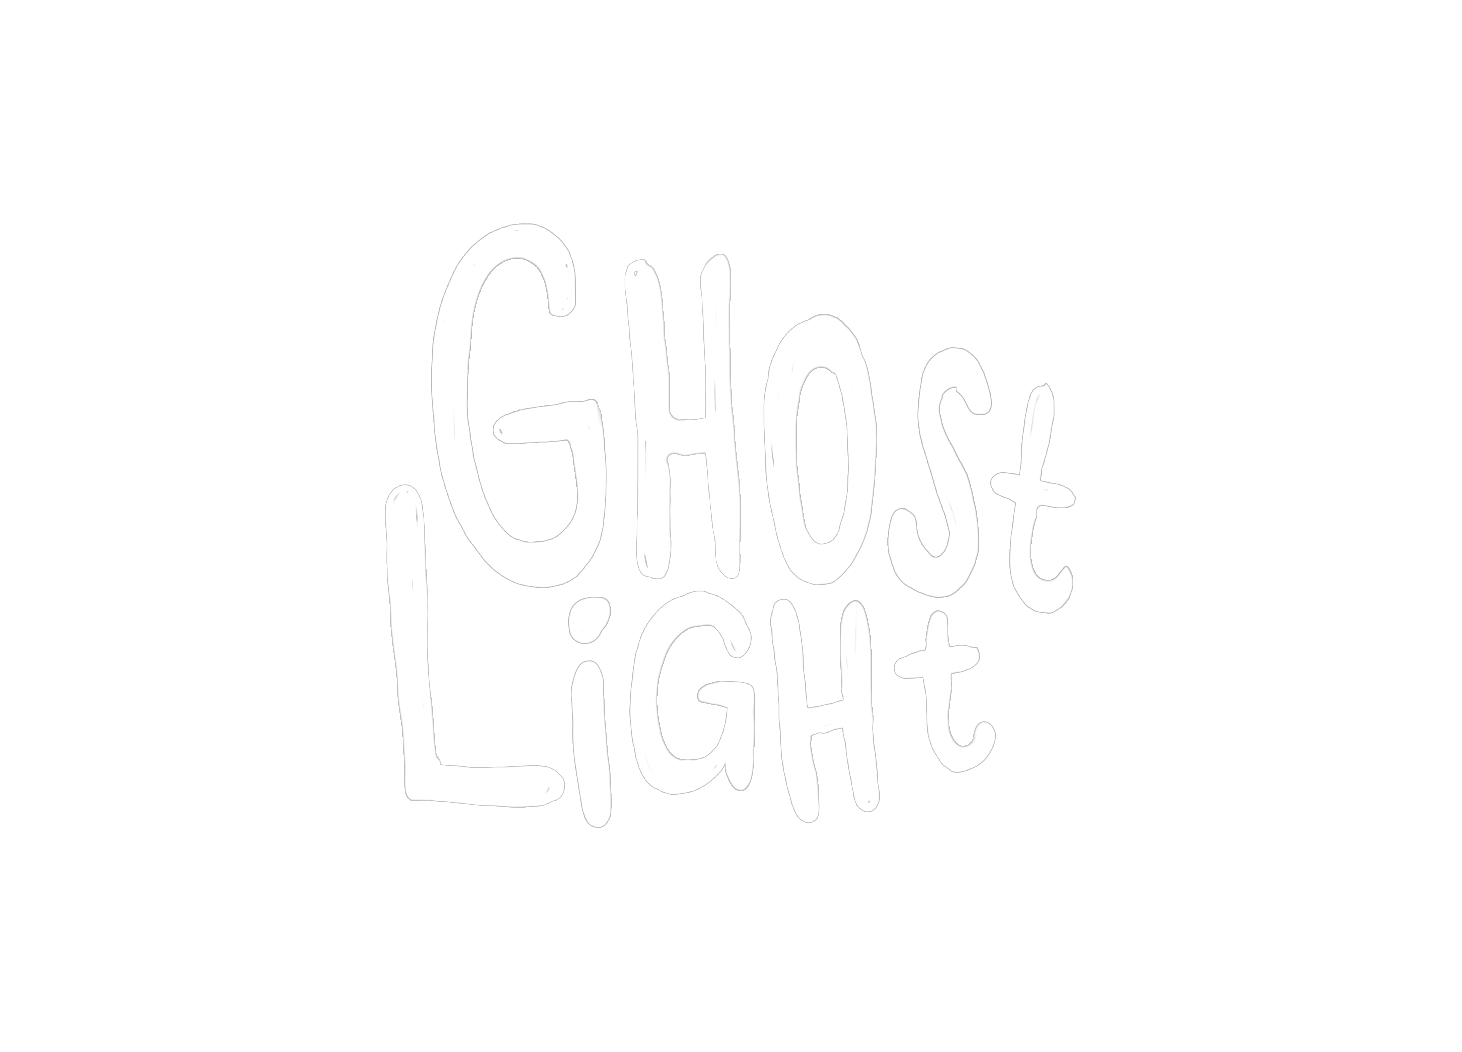 Ghost Light You say there's so much you don't know you need to go and find yourself you say you'd rather be alone 'cause you think you won't find it tied to someone else. ghost light